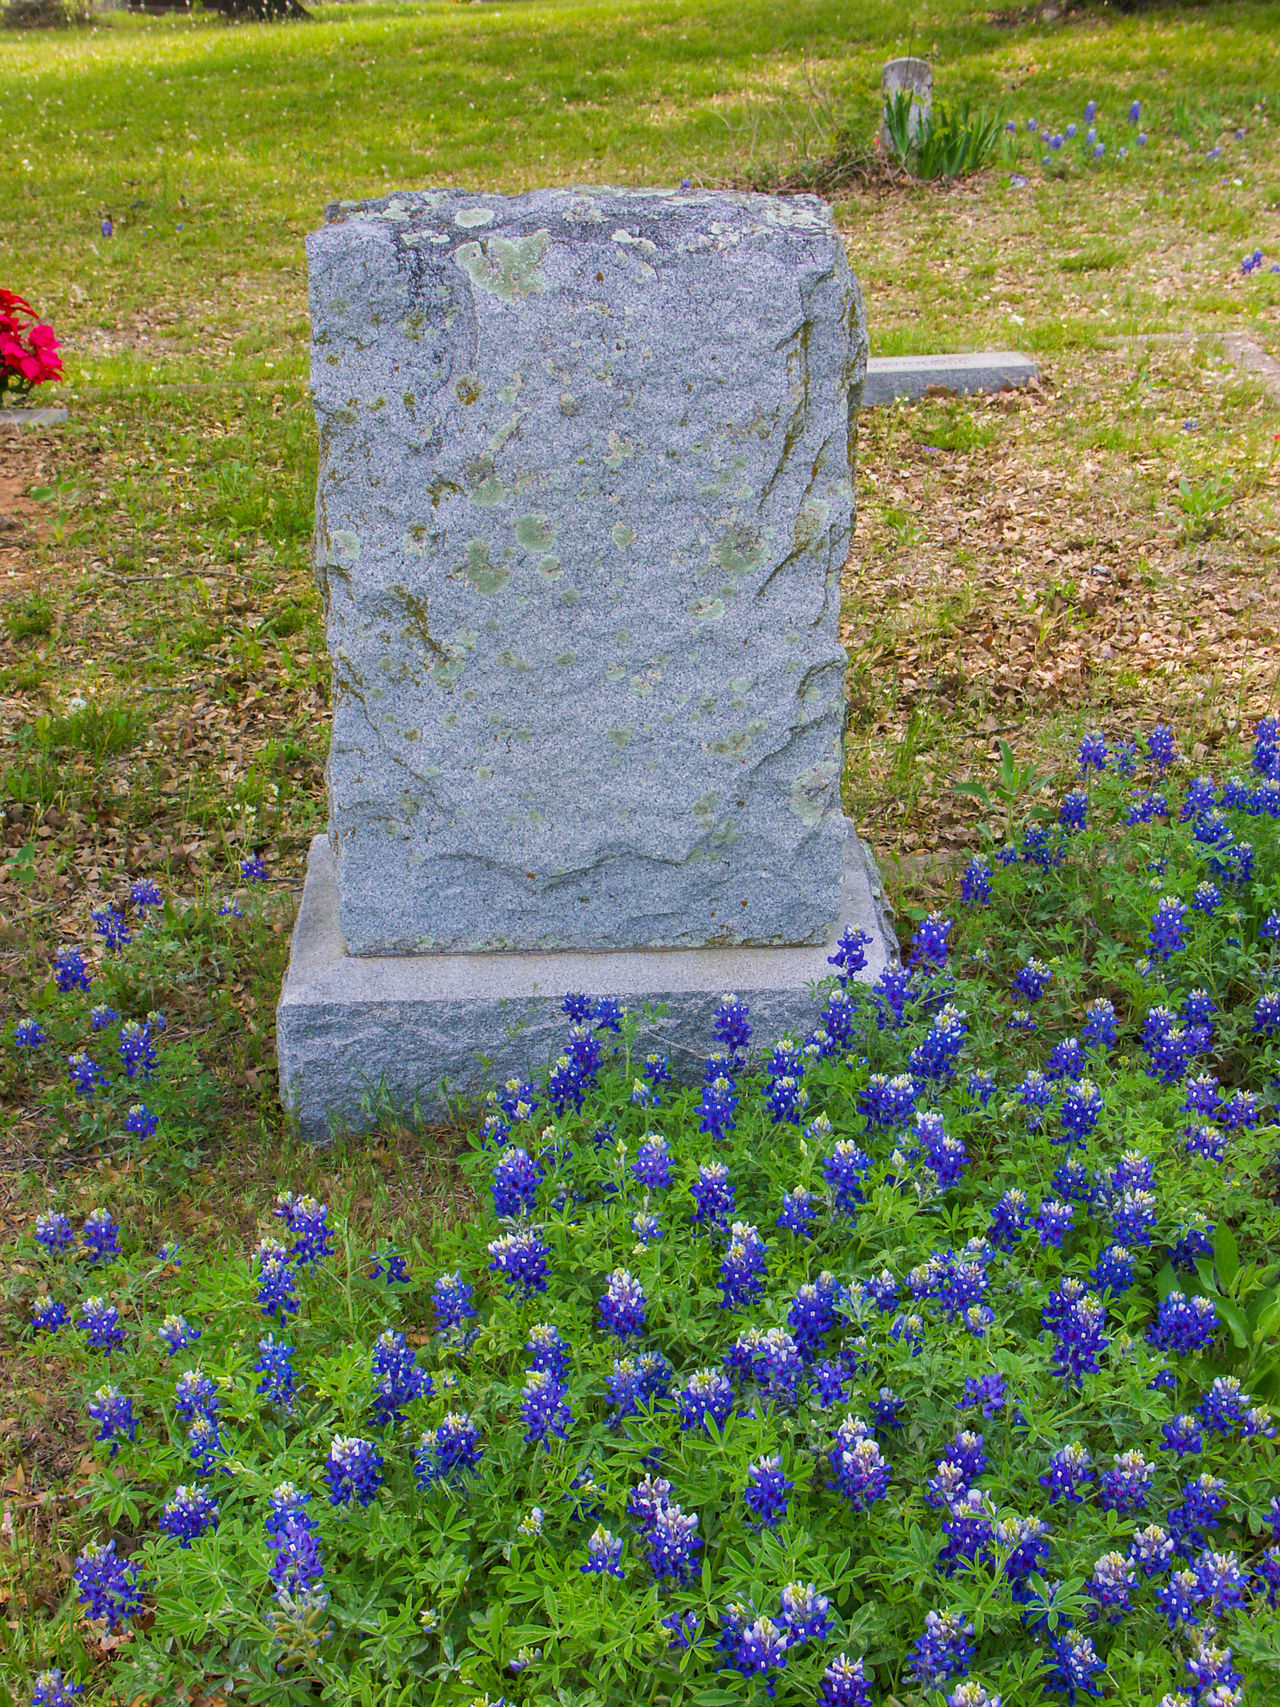 Texas Hill Country in the spring with bluebonnets, Indian paint brush and cacuti blooming. Bluebonnets Gravestone Graveyard Graveyard Beauty Headstone Spring Spring Flowers Springtime Texas